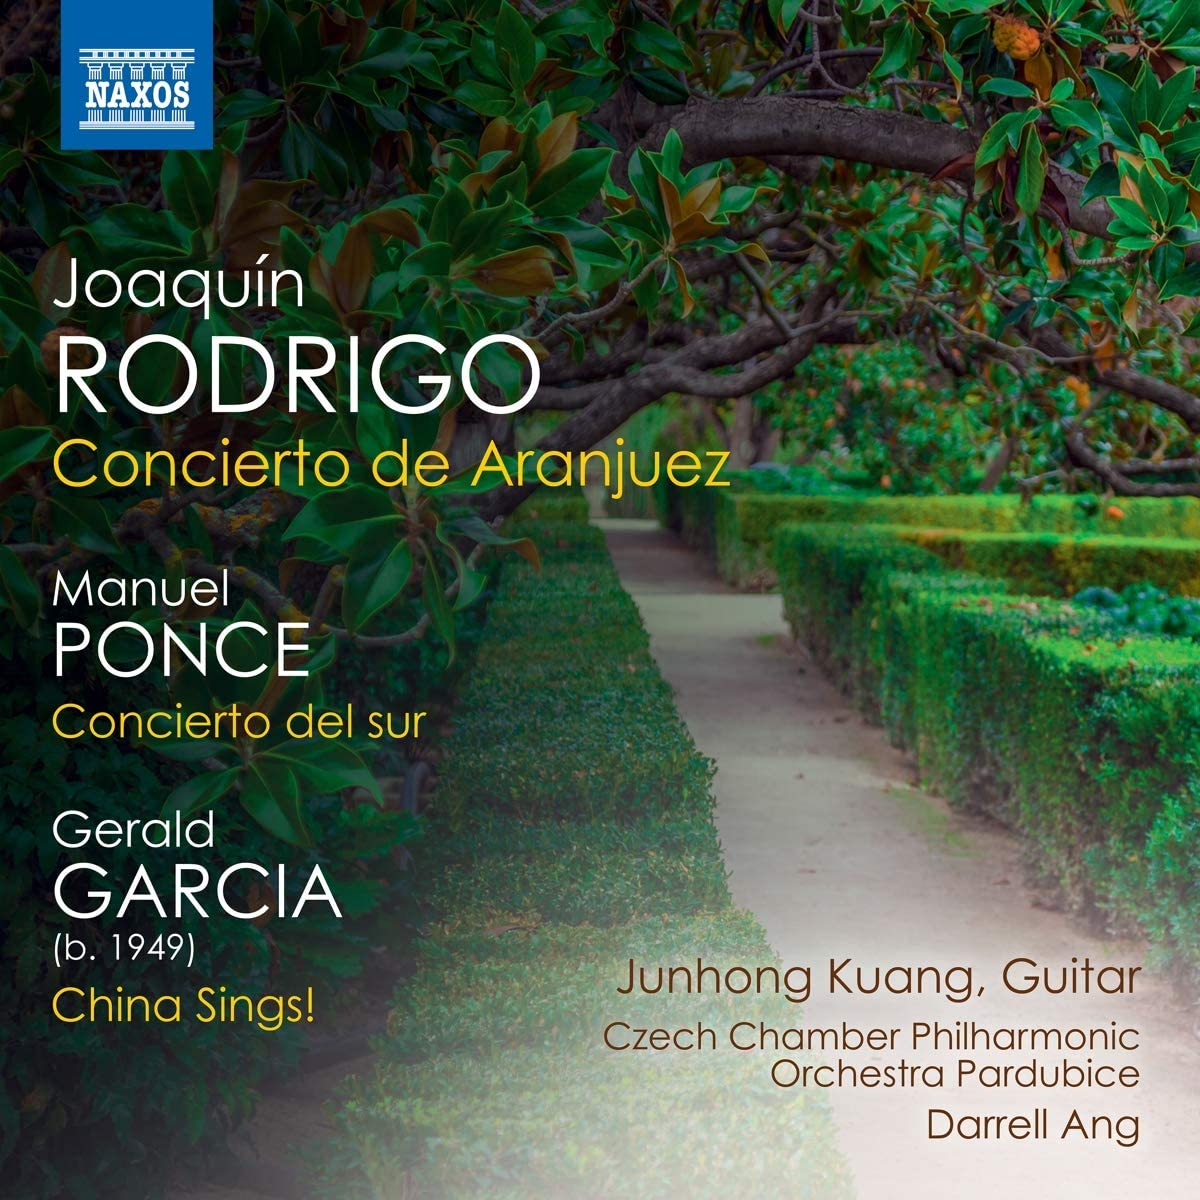 Review of RODRIGO Concierto de Aranjuez (Junhong Kuang)